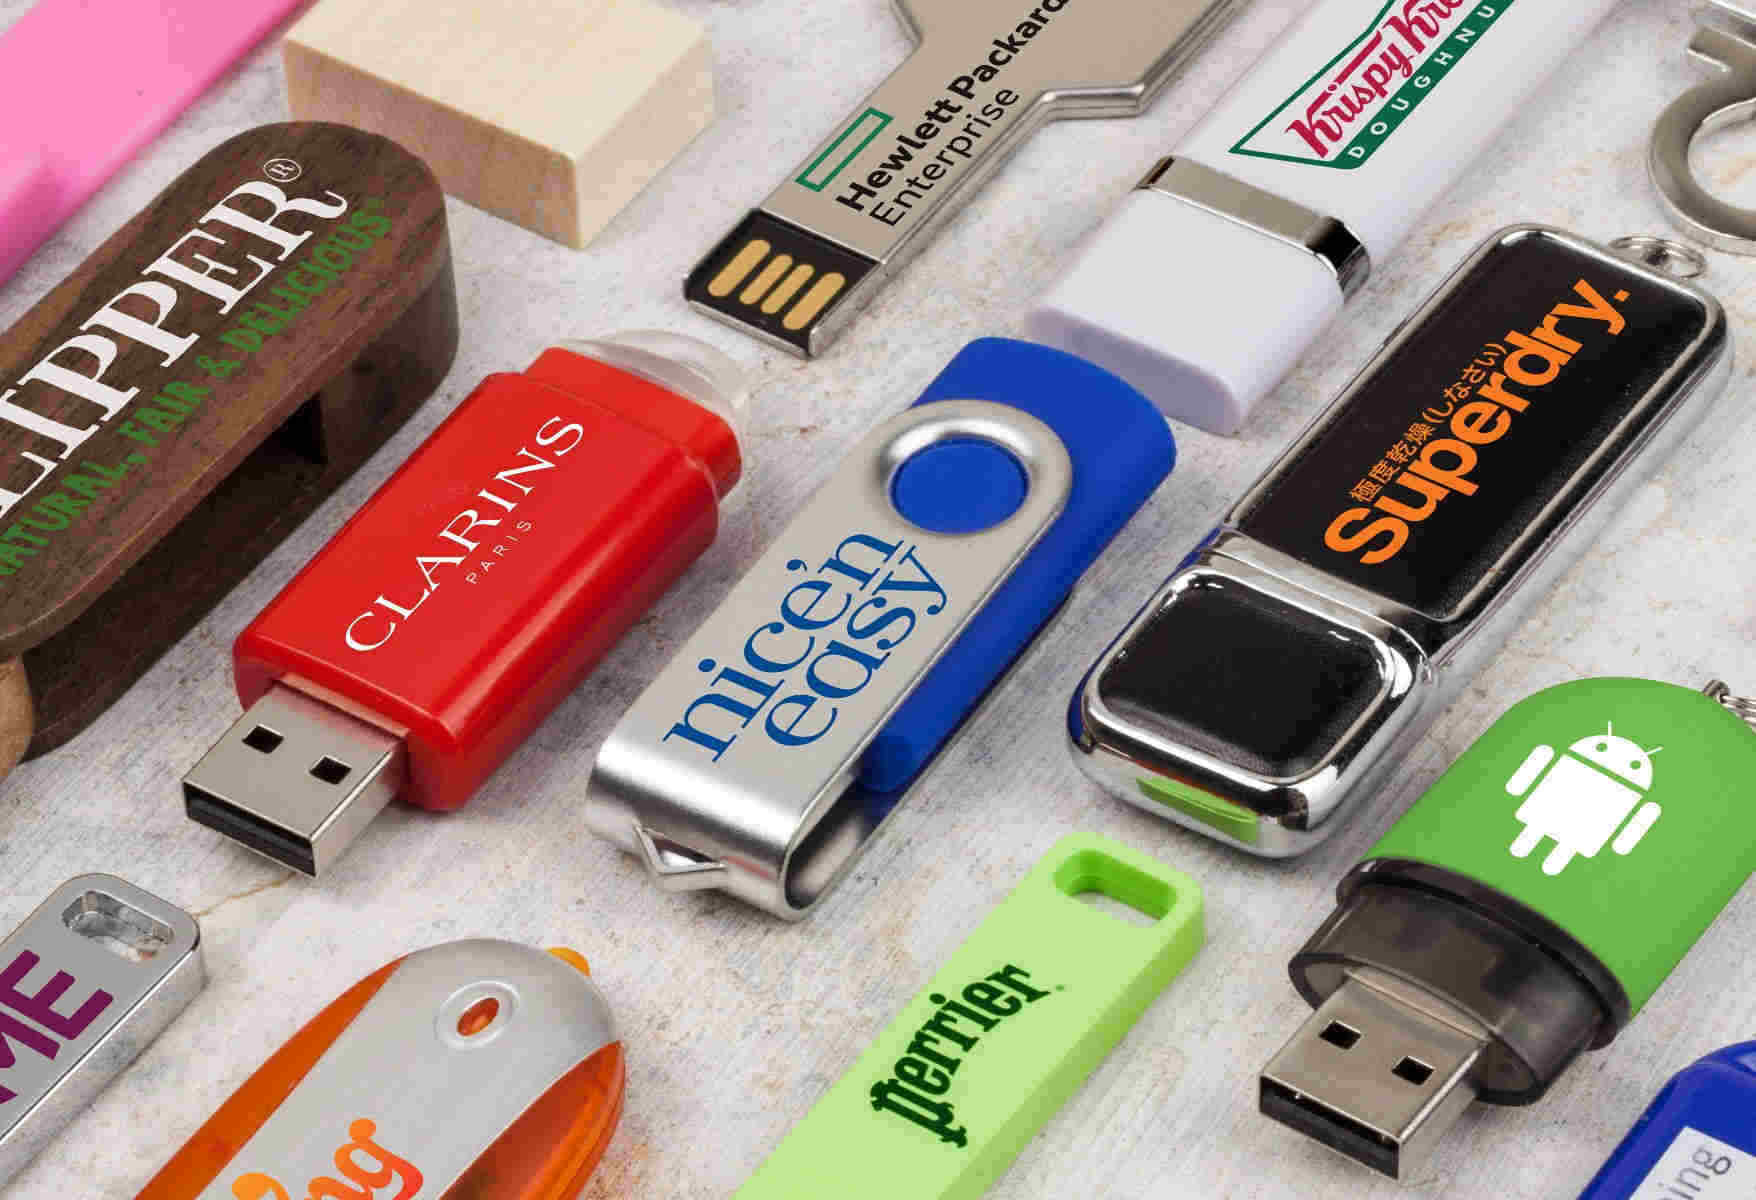 a selection of branded usb sticks from USB2U